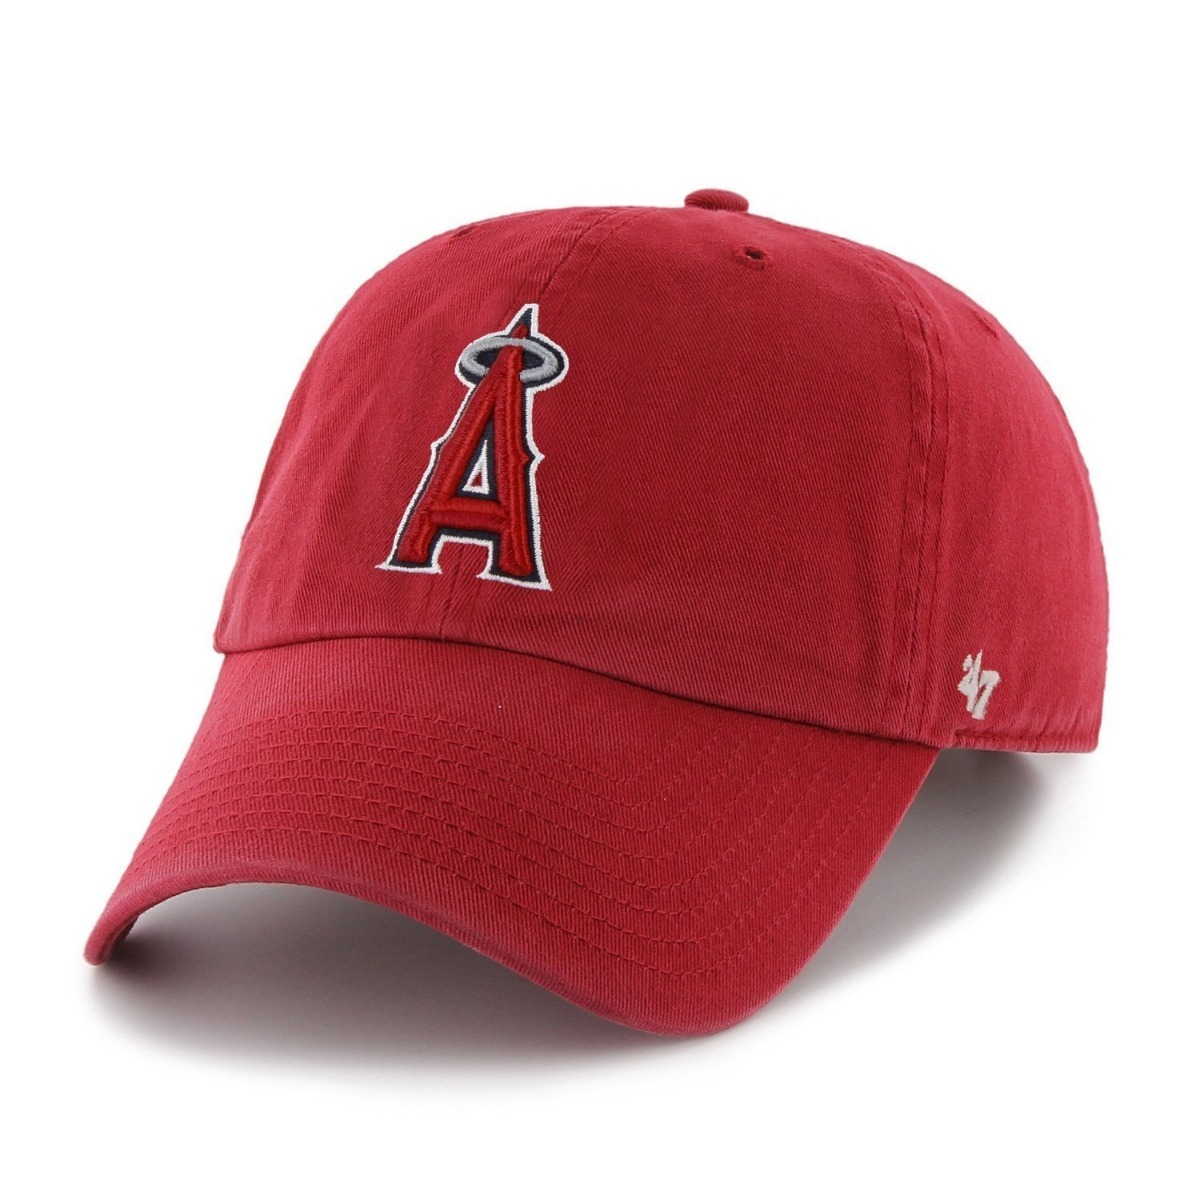 gorra ajustable mlb los angeles angels 47 clean up psp. Cargando zoom. 02e91b00e4c